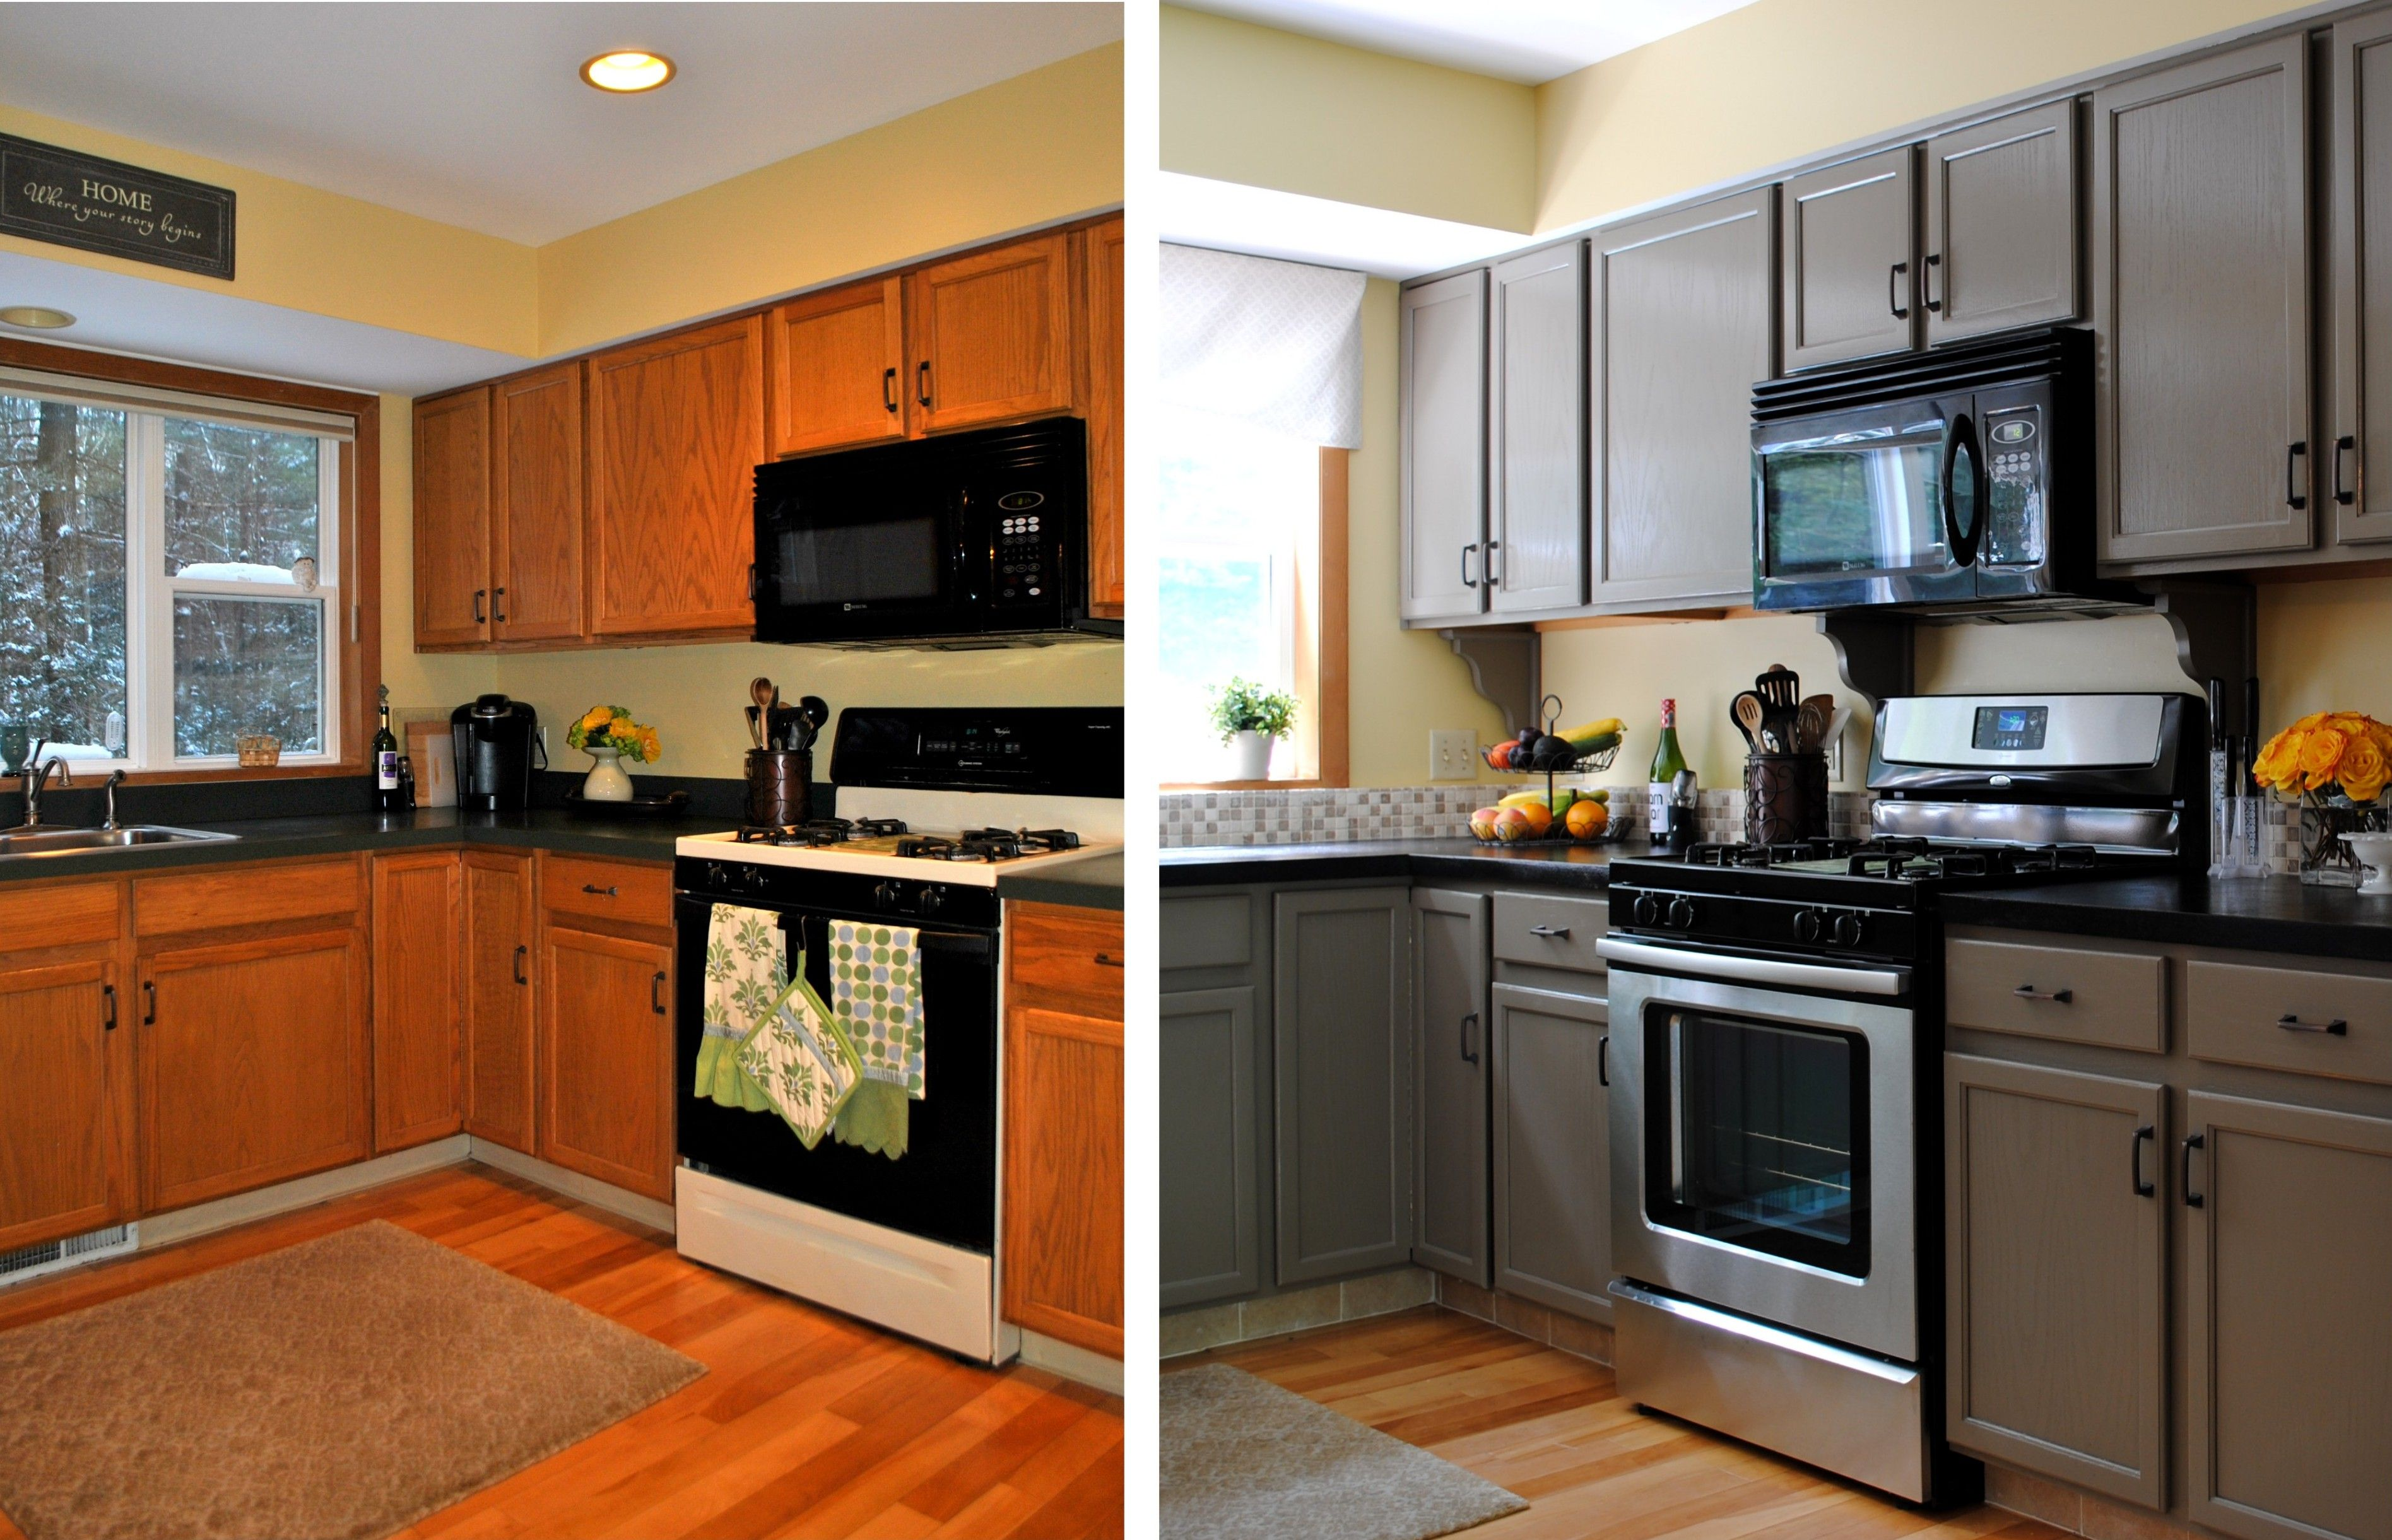 Best Kitchen Gallery: Cool Best Painted Kitchen Cabi S Before And After 64 For Small of Painted Kitchen Cabinets Before And After on cal-ite.com